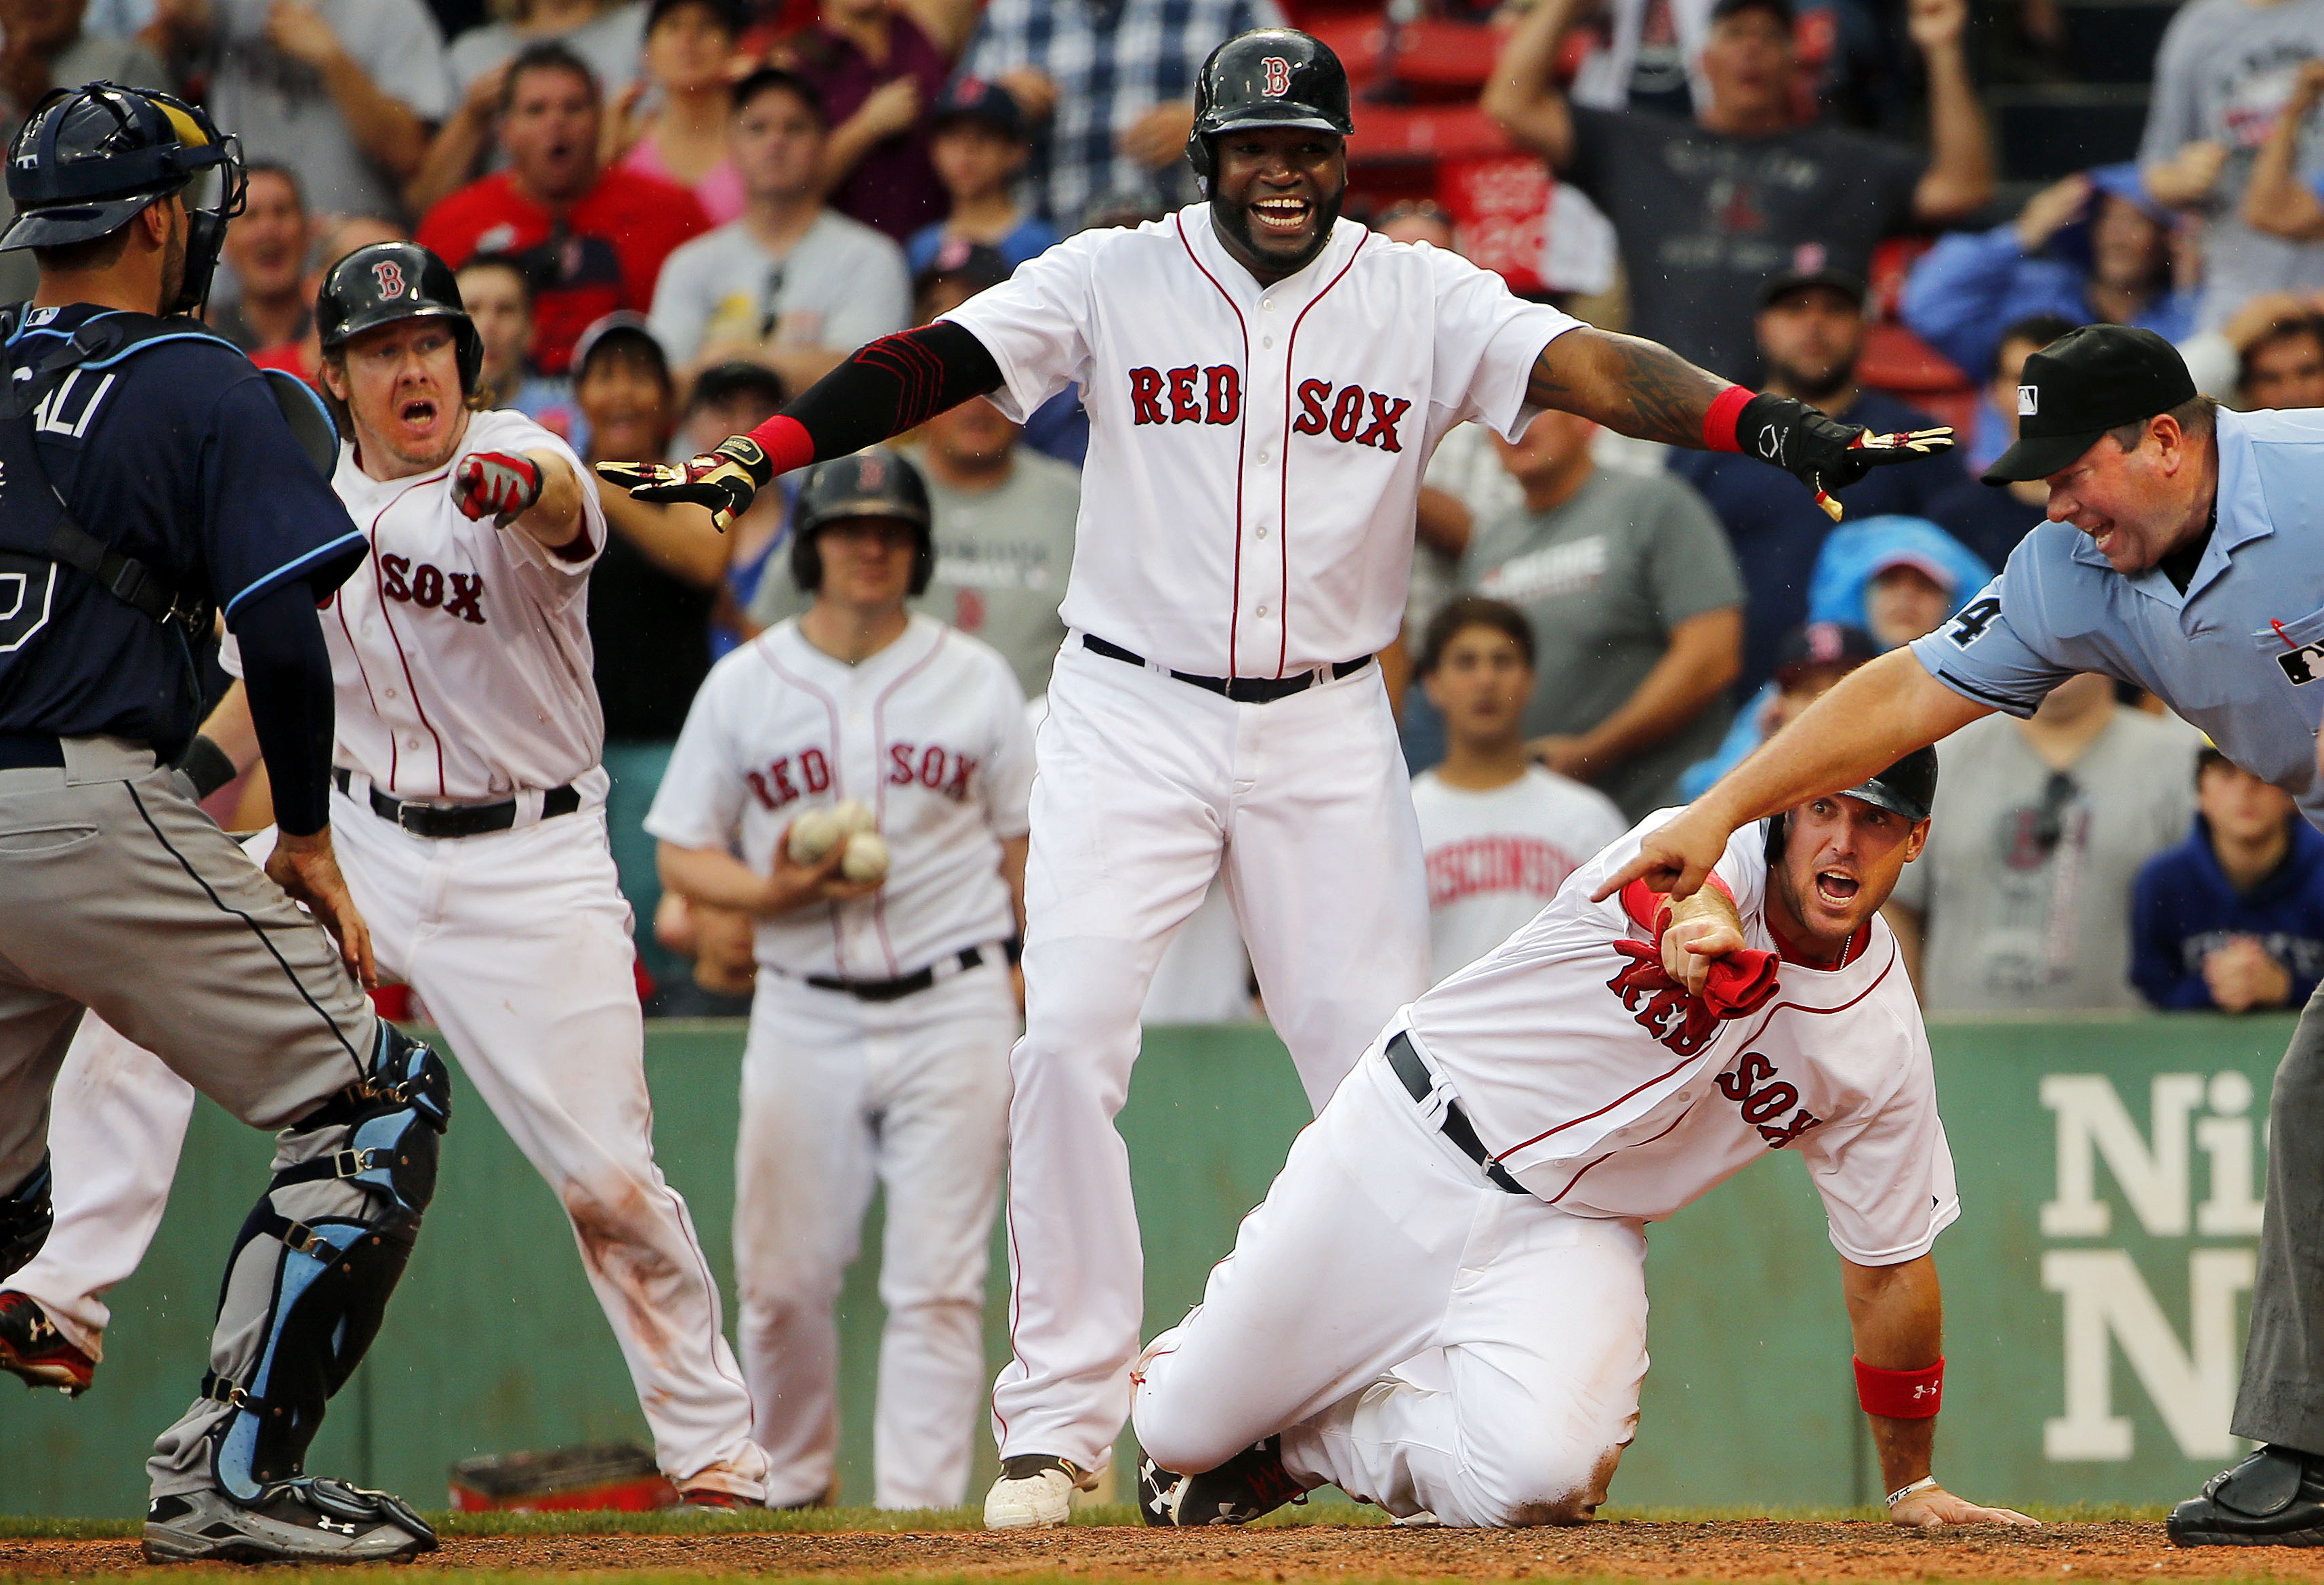 Boston Red Sox's Ryan Hanigan, second from left, David Ortiz, center, and Travis Shaw, second from right, along with umpire Sam Holbrook, right, all signal safe after Shaw slid around the tag of Tampa Bay Rays catcher Curt Casali, left, during the sixth i